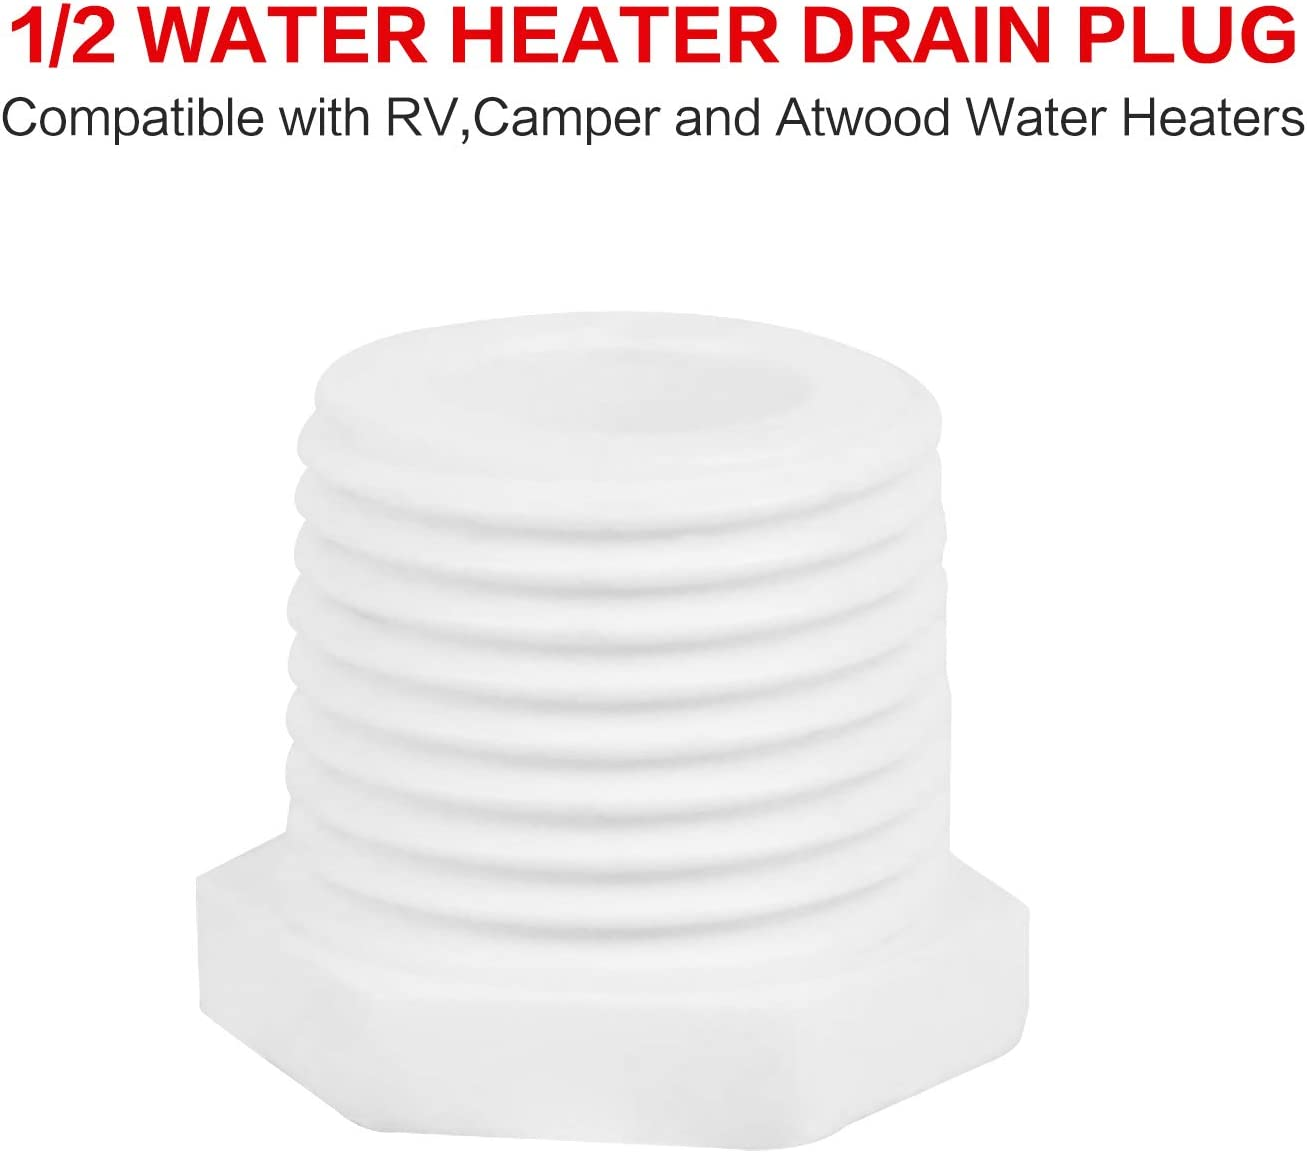 15 Packs Ketofa 11630 Water Heater Drain Plug,91857 1//2 Plastic Drain Plug Kit Compatible with Atwood and RV Camper Water Heaters,1//2 Inch